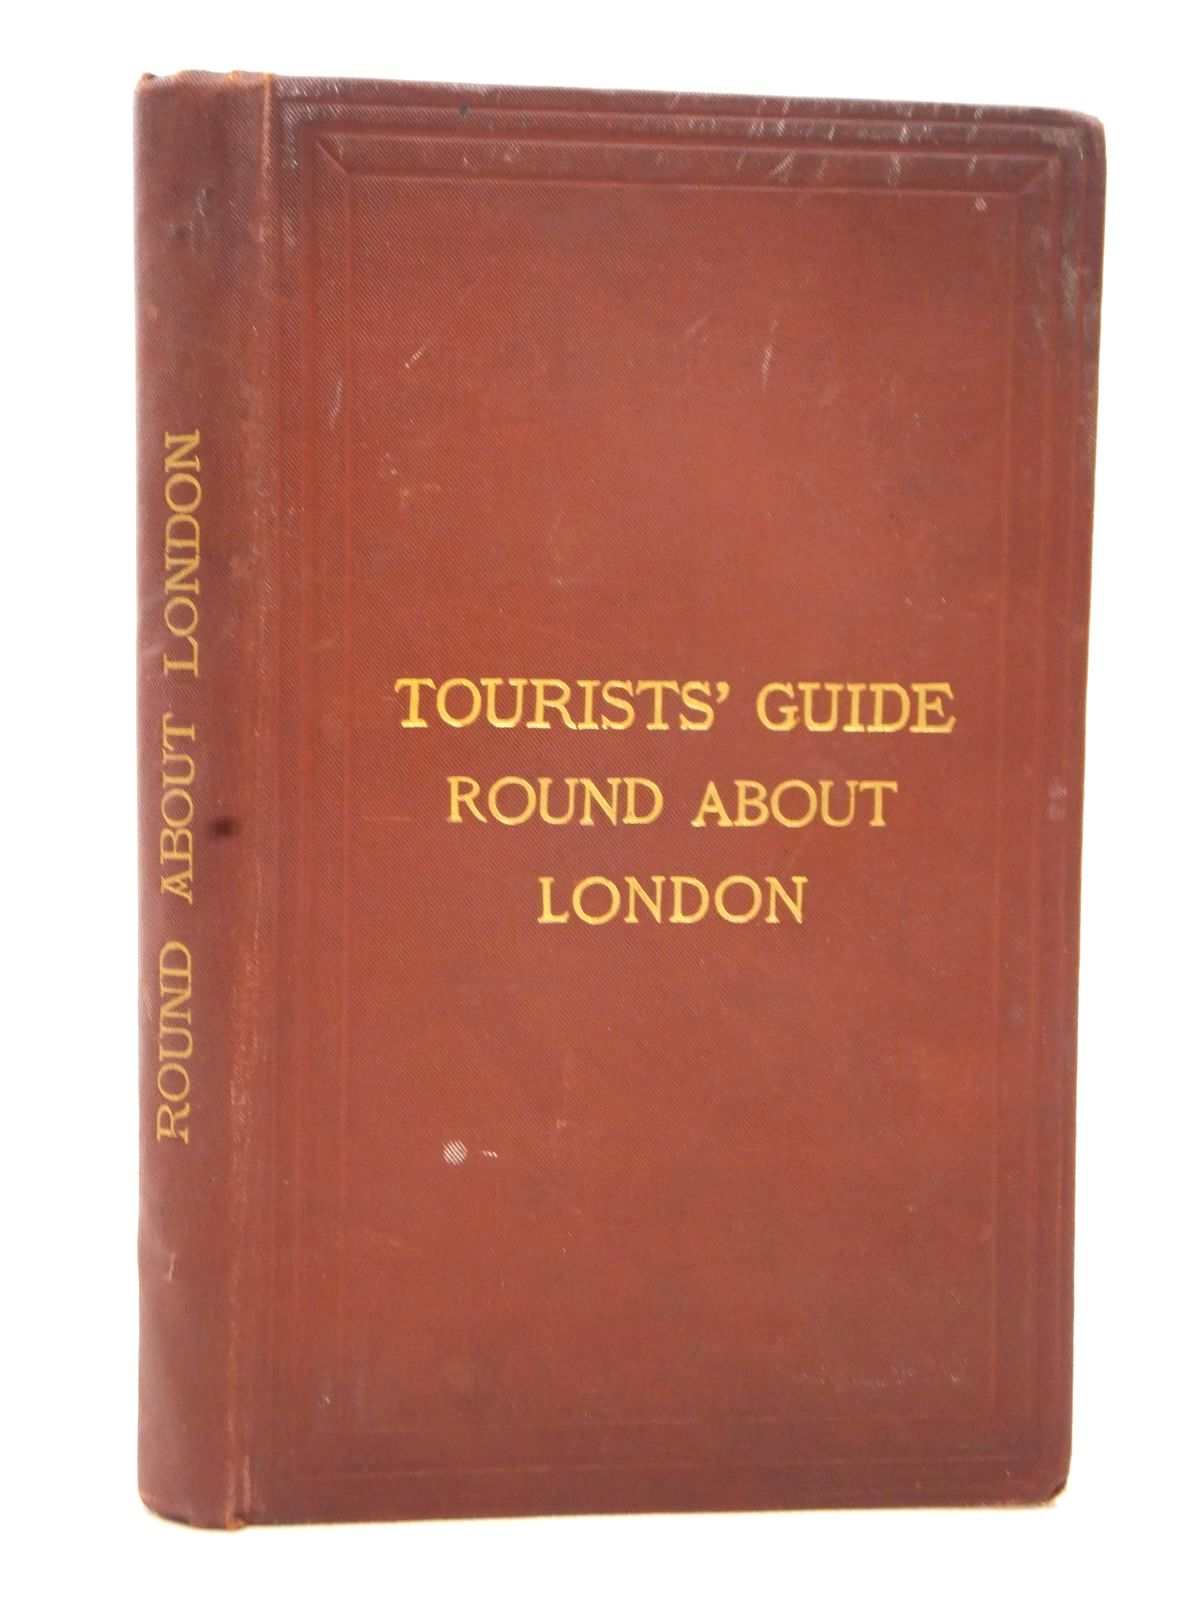 Photo of ROUND ABOUT LONDON (TOURISTS' GUIDE) written by Loftie, William J. published by Edward Stanford (STOCK CODE: 1609424)  for sale by Stella & Rose's Books